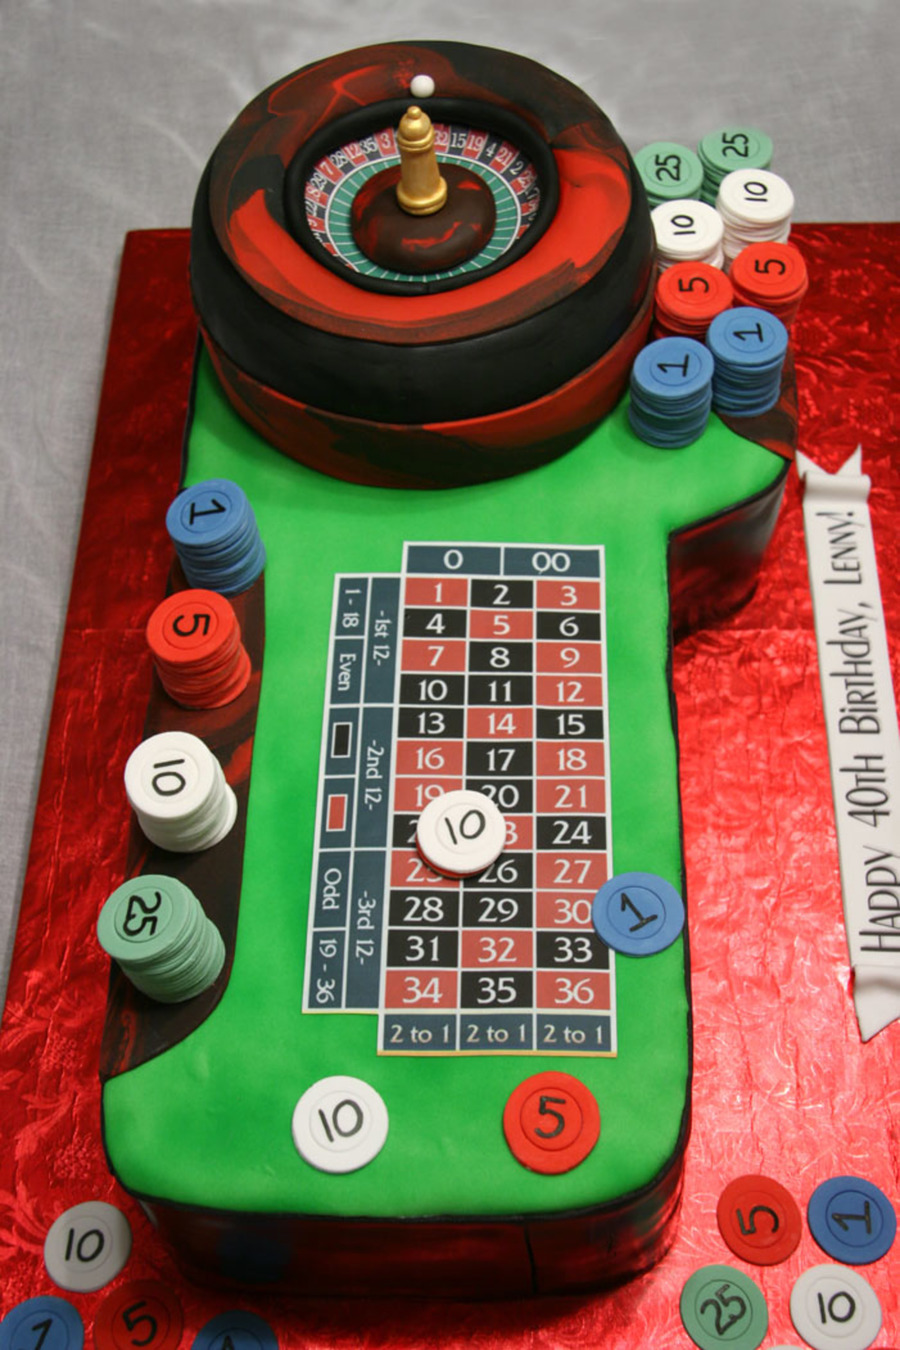 Roulette Table on Cake Central